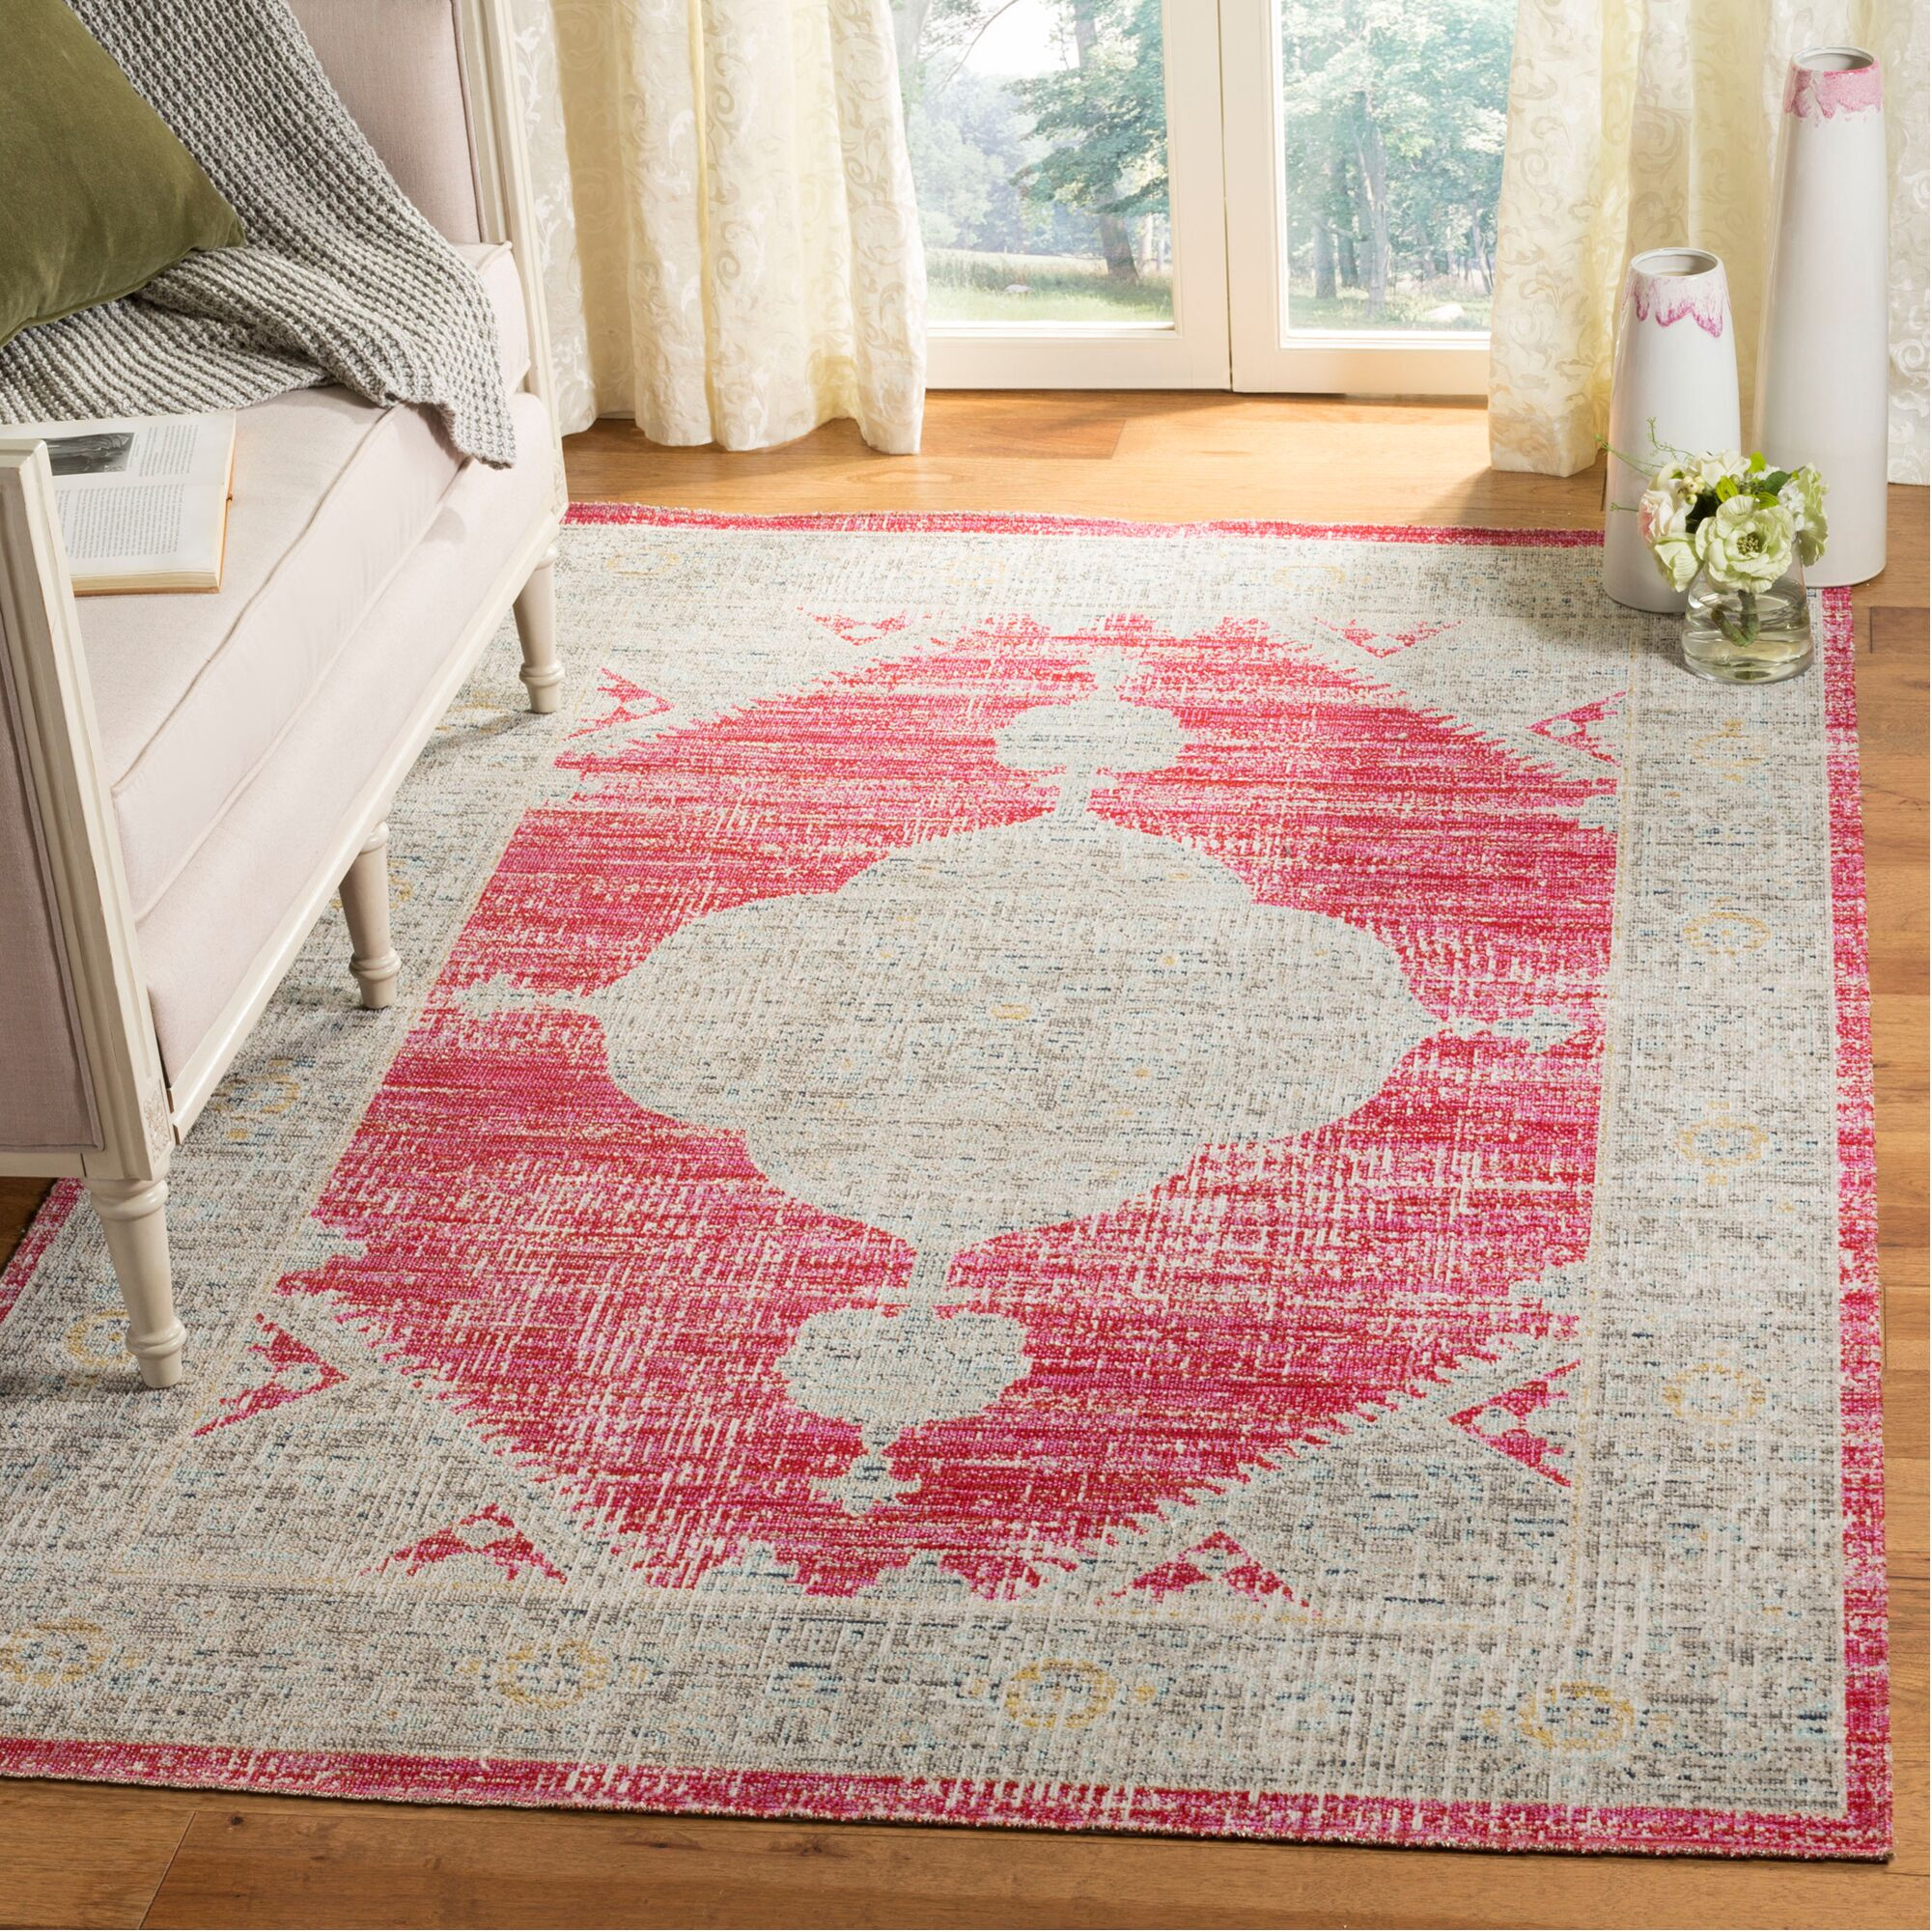 Griffeth Rose/Gray Indoor/Outdoor Area Rug Rug Size: Rectangle 9' x 12'